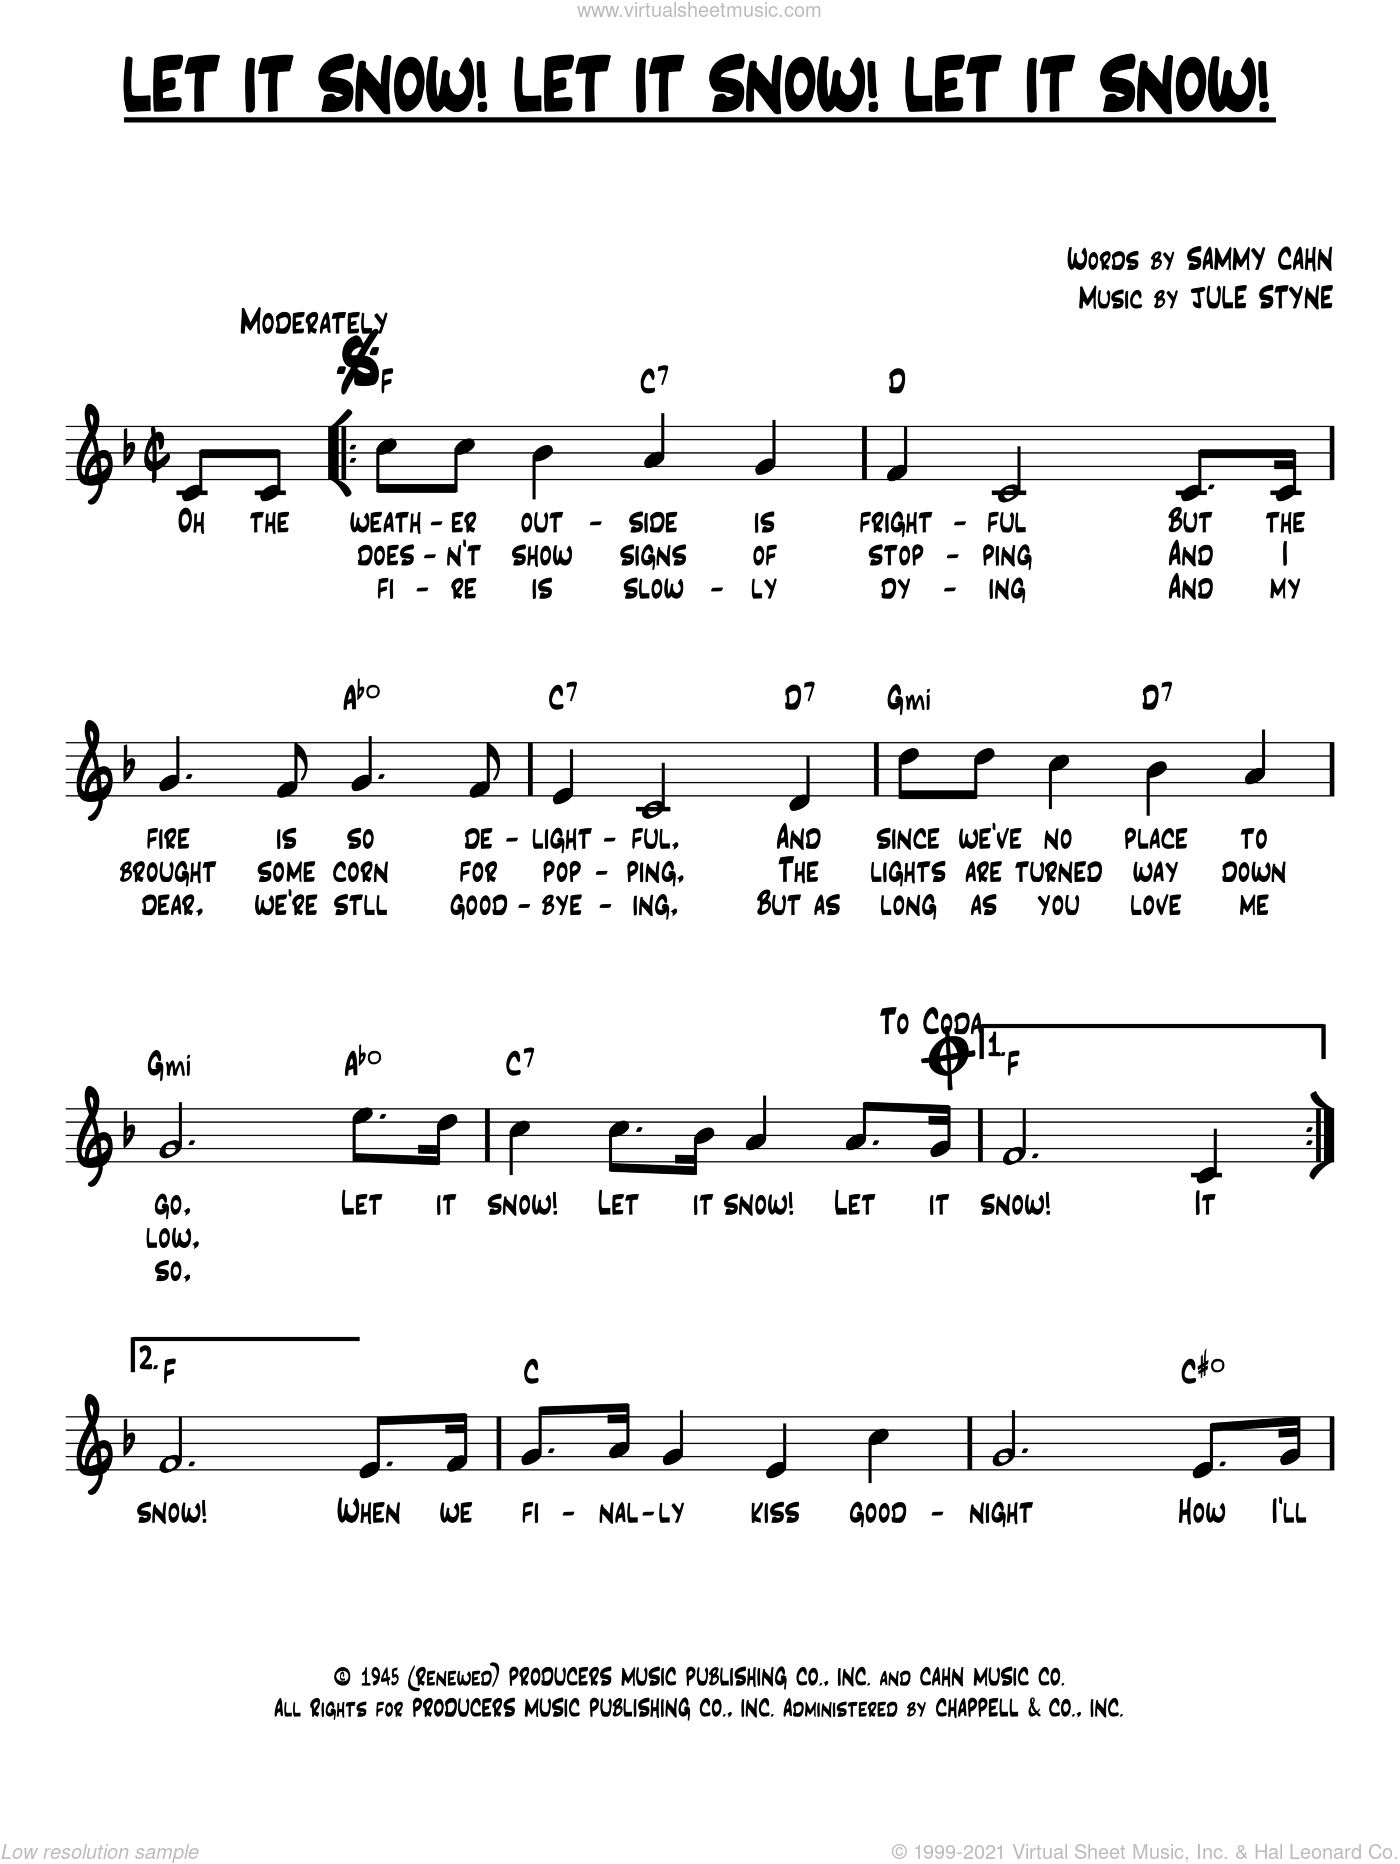 Let It Snow! Let It Snow! Let It Snow! sheet music for voice and other instruments (fake book) by Jule Styne